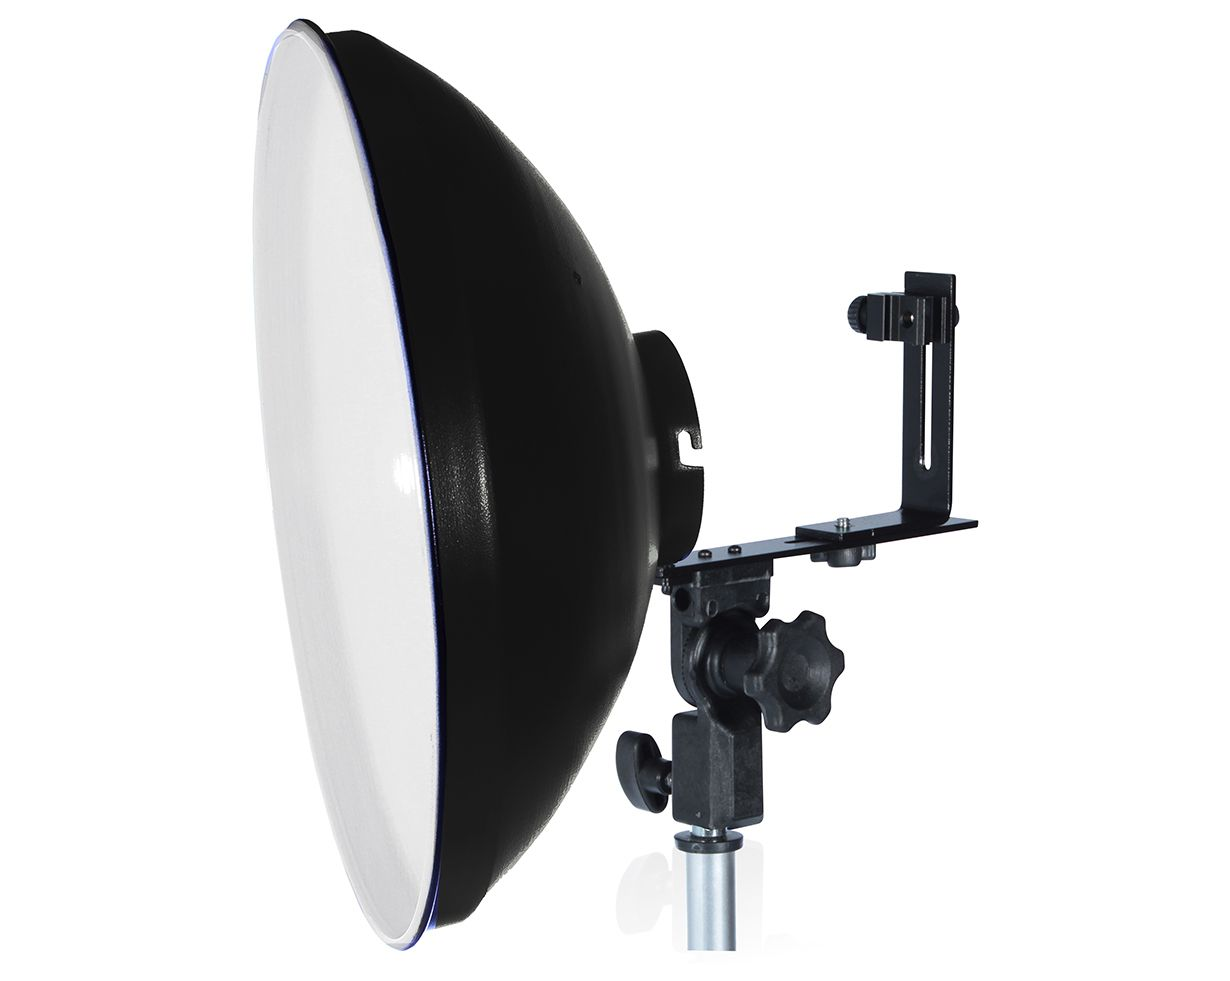 KIT REFLETOR BEAUTY DISH COM SUPORTE PARA FLASH SPEEDLIGHT